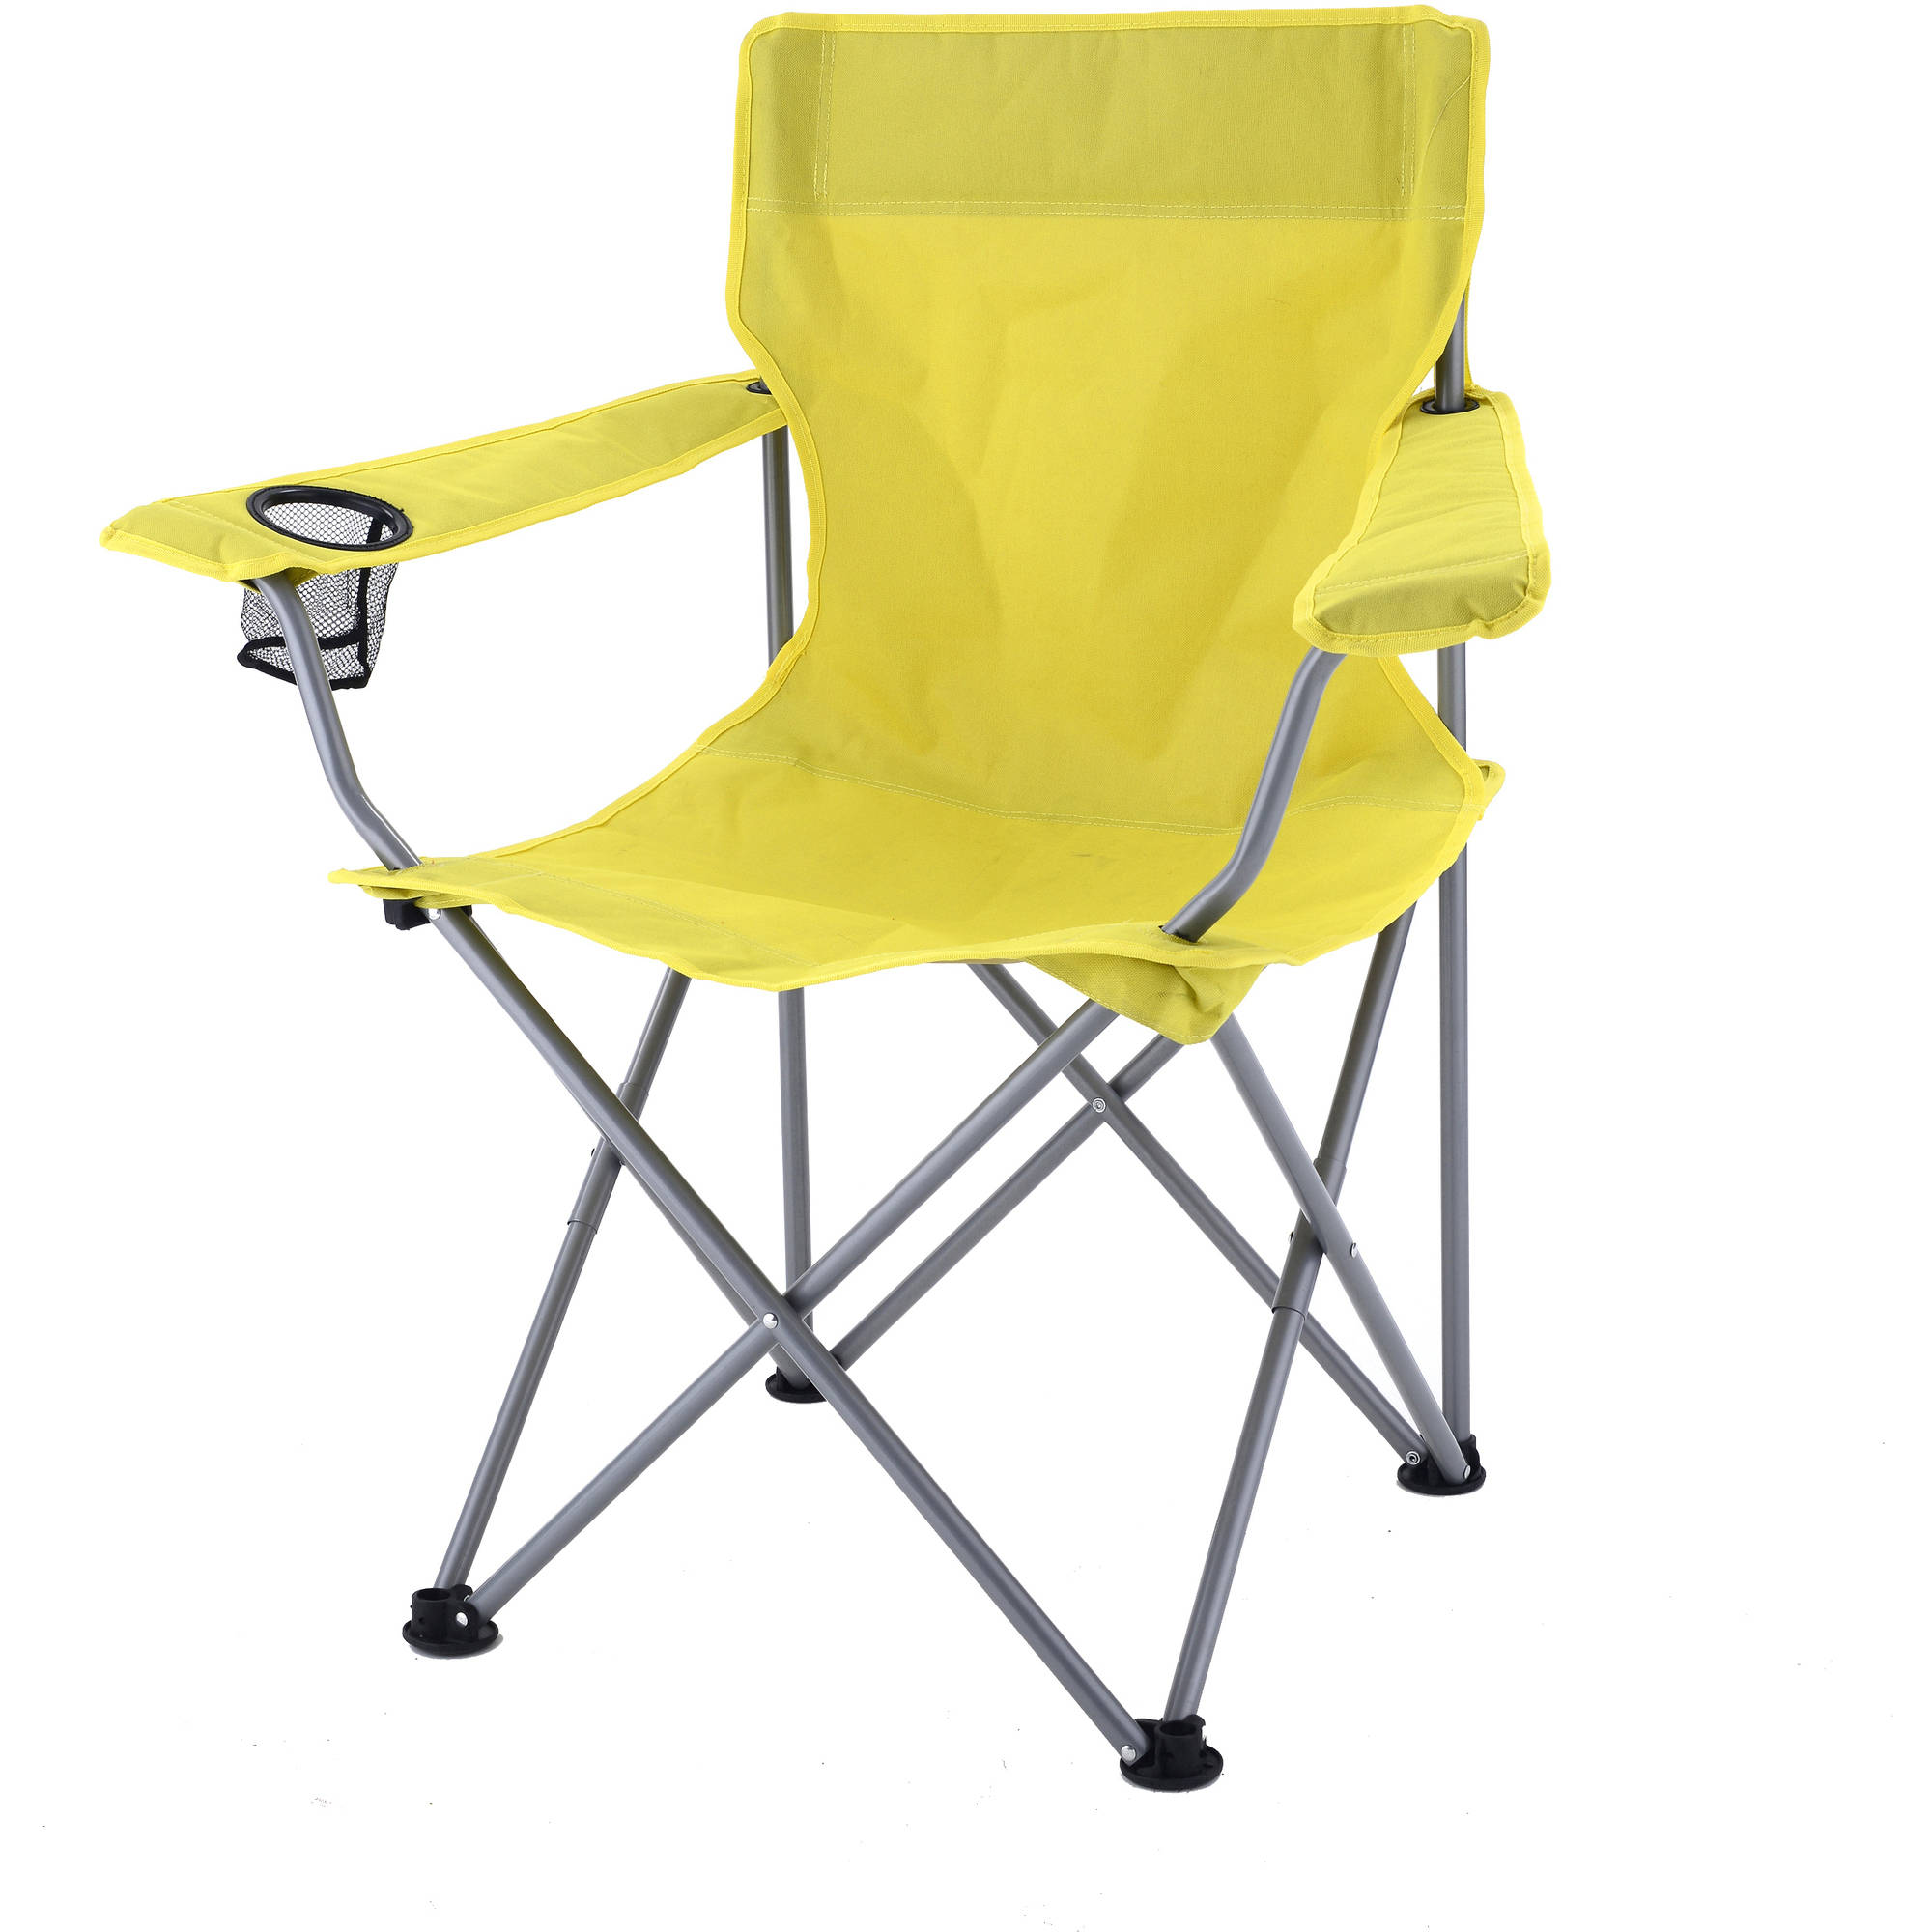 Ozark Trail Deluxe Folding Camping Arm Chair   Walmart.com